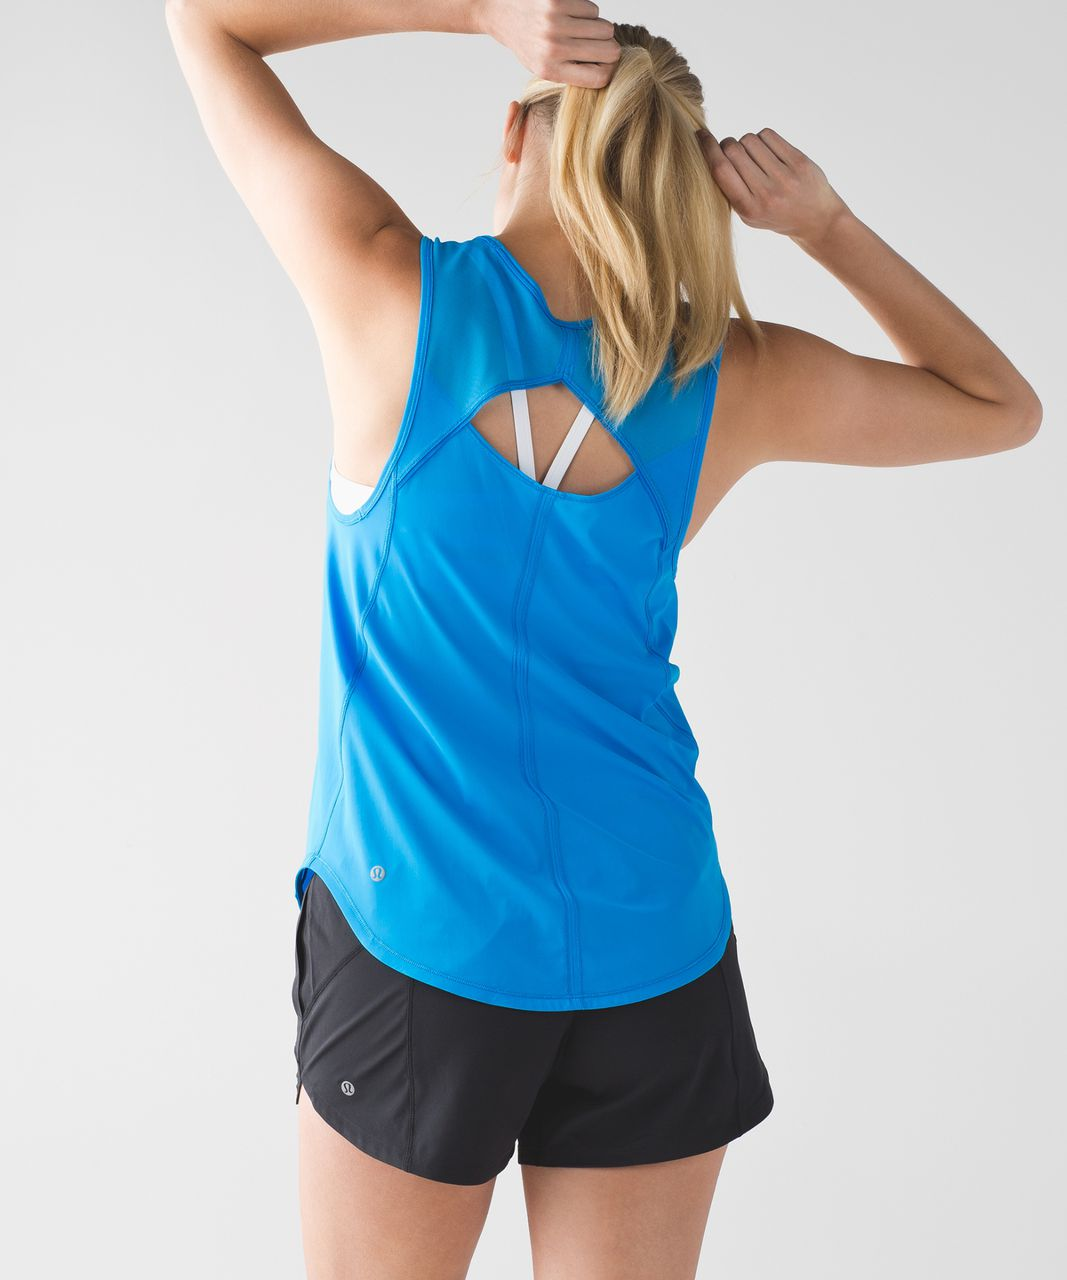 Lululemon Sculpt Tank - Beach Blanket Blue